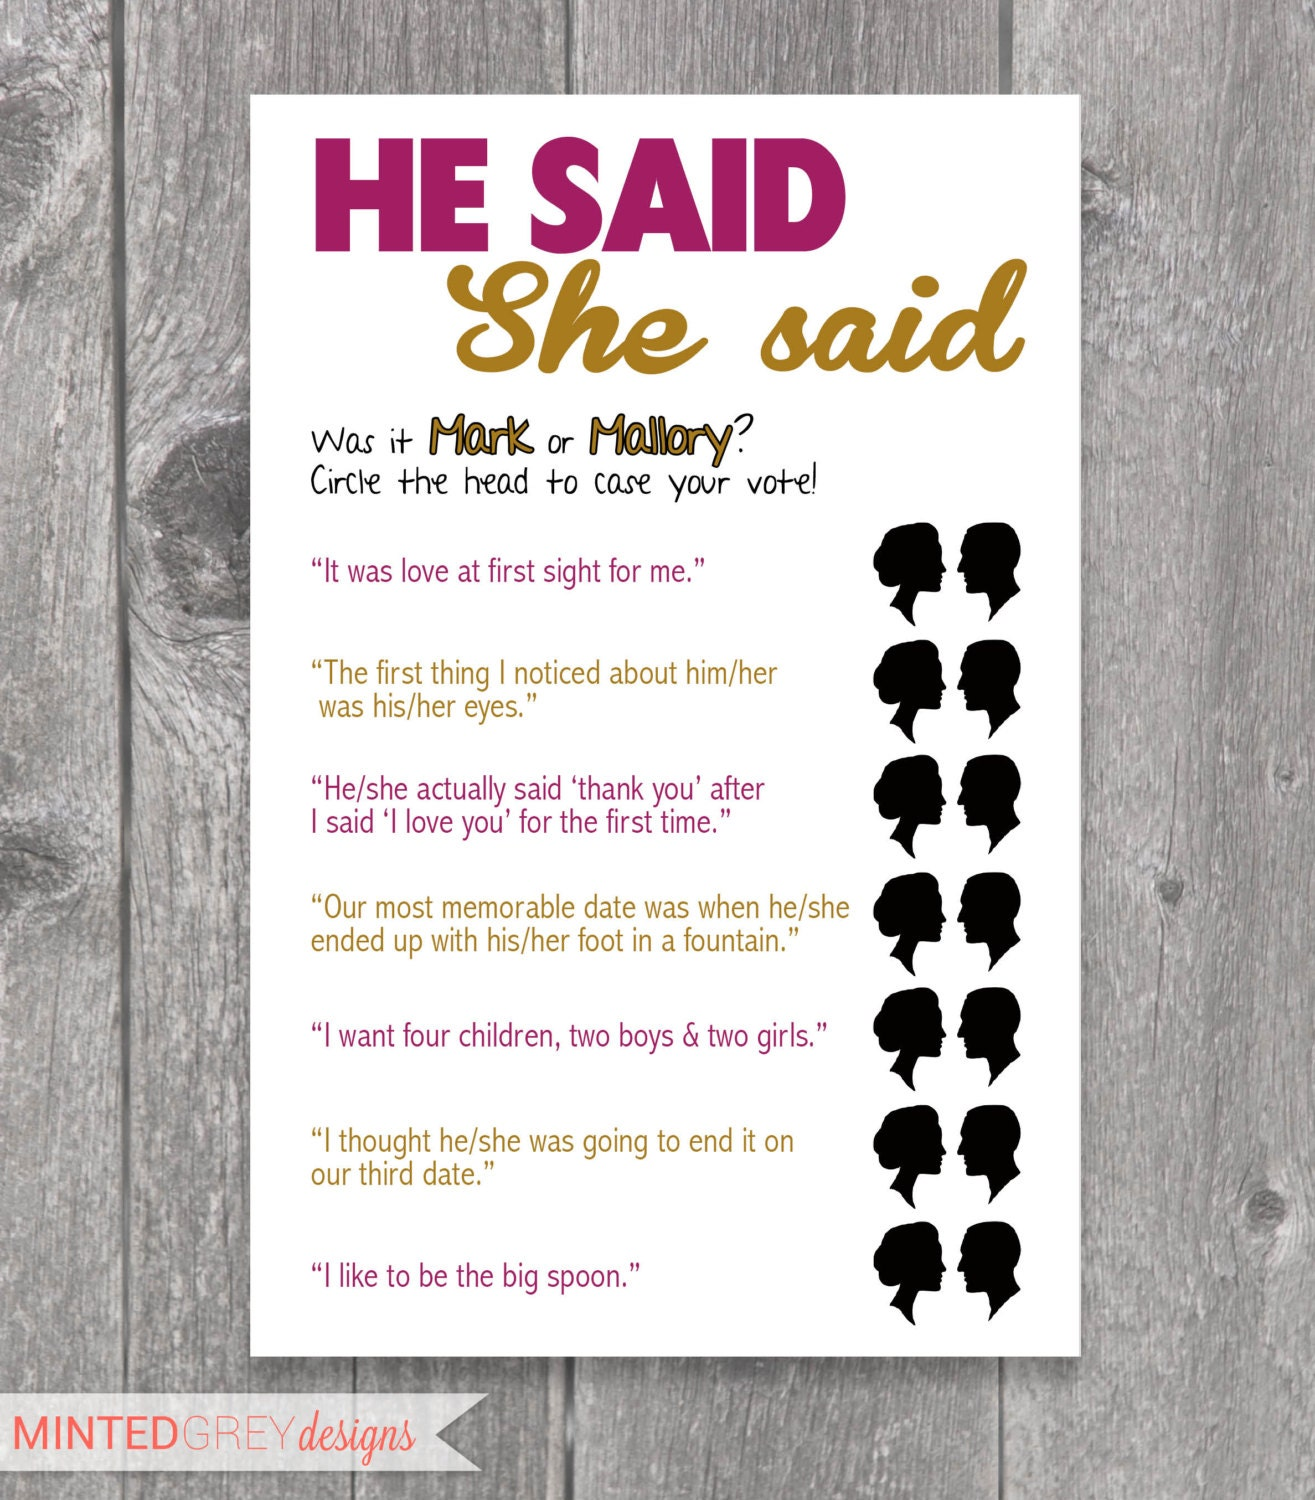 Challenger image with regard to he said she said bridal shower game free printable